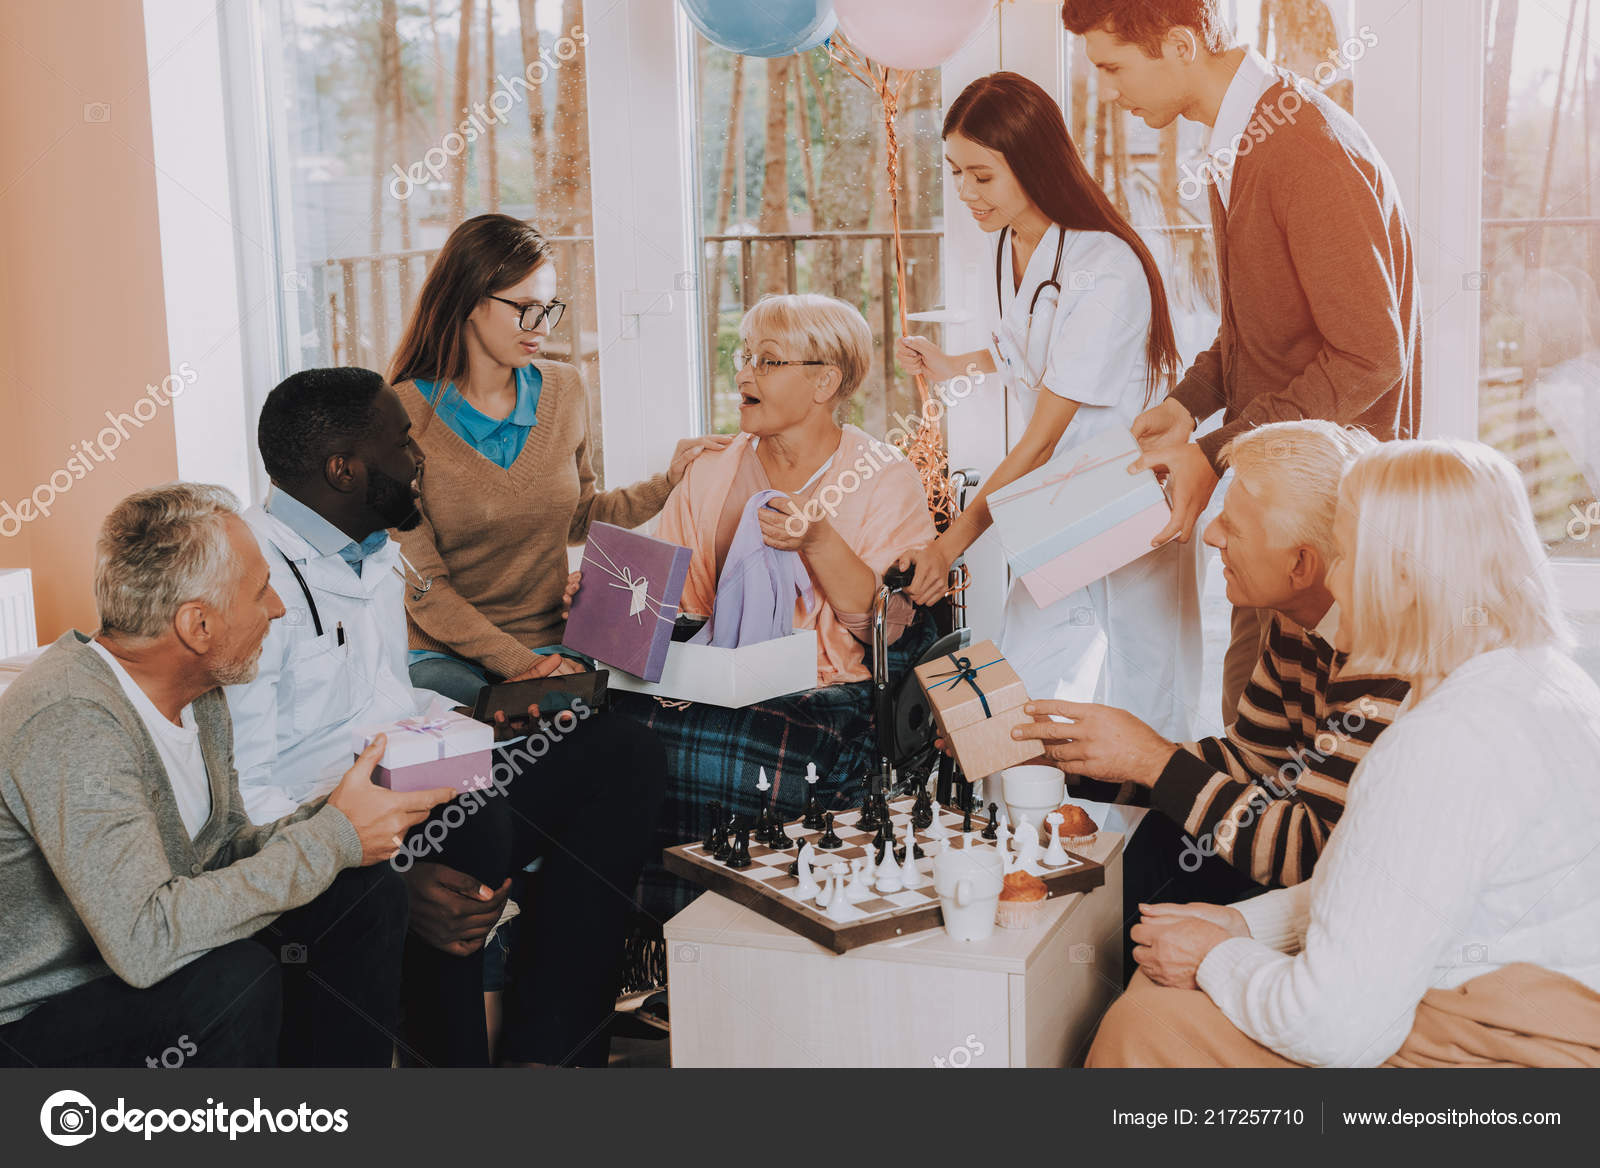 Congratulate Very Happy Gifts Balloons Nursing Home Young Old People